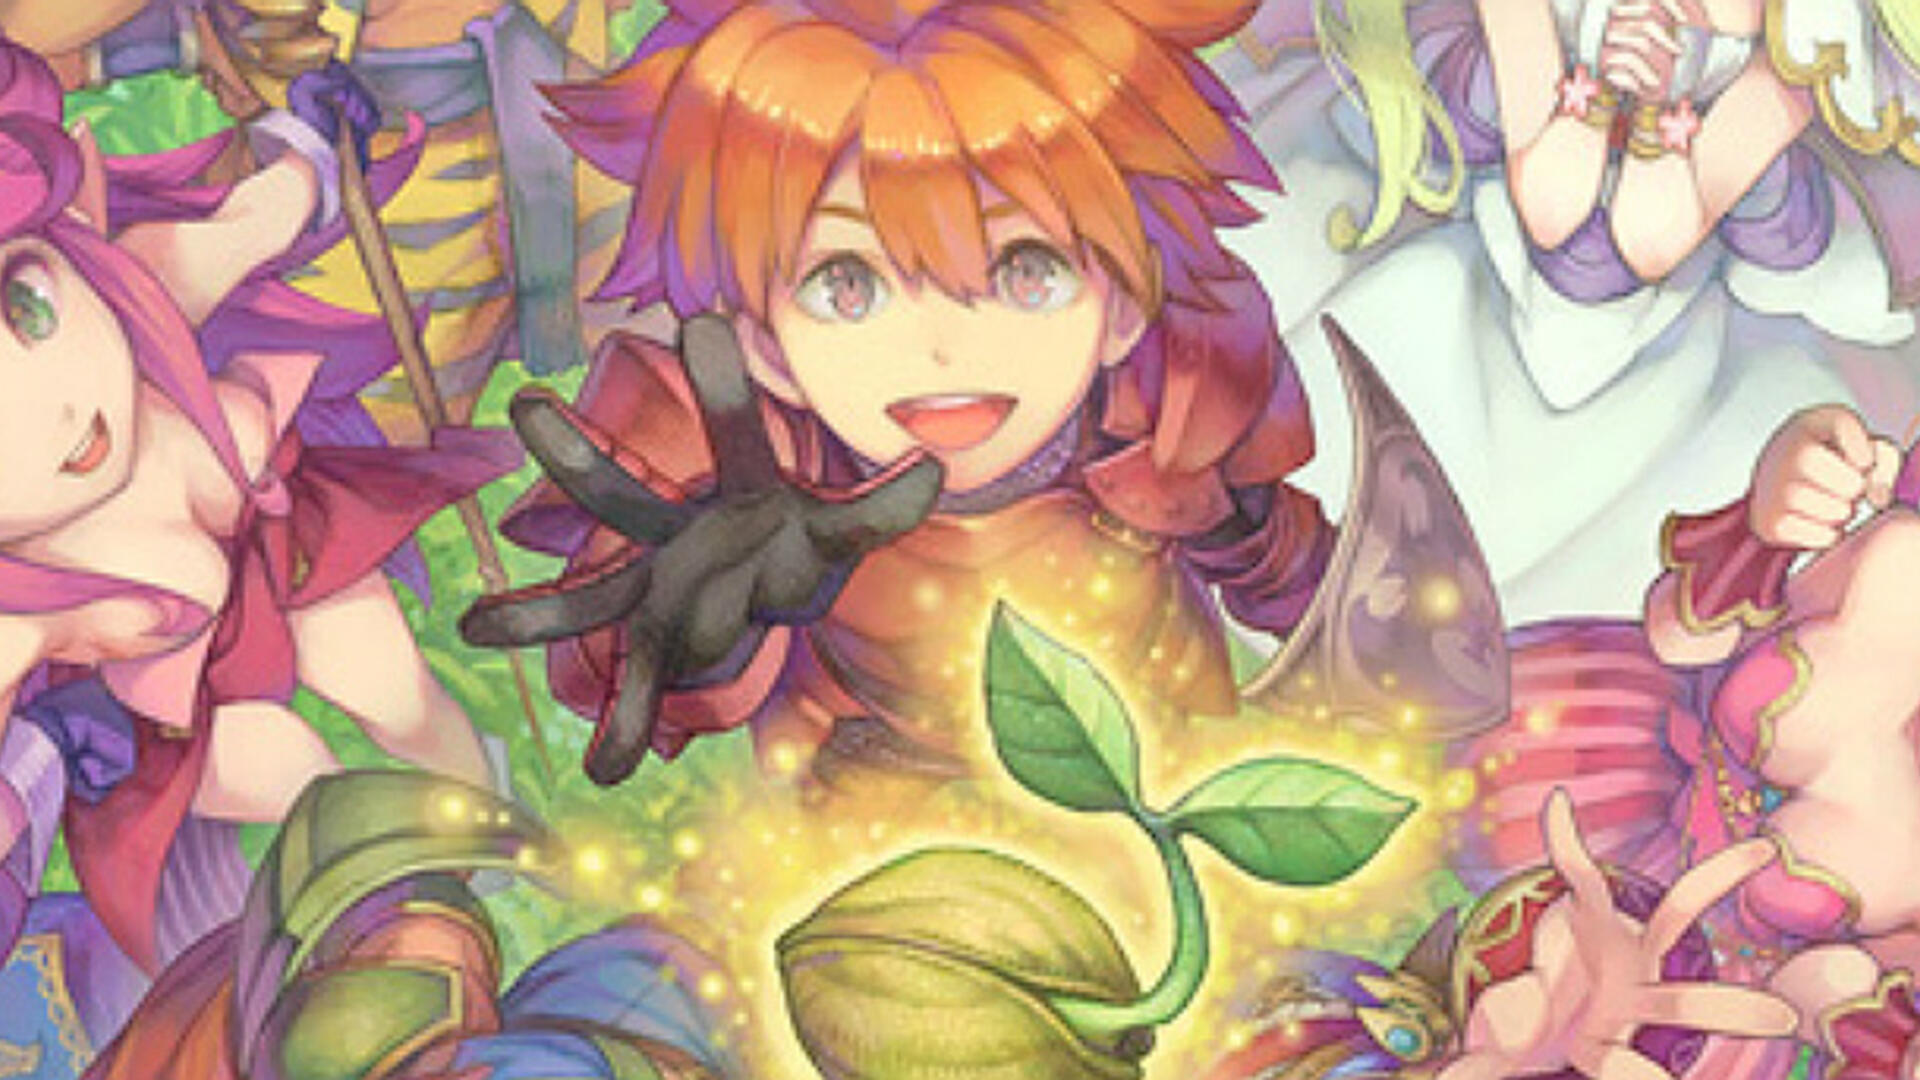 Want the Seiken Densetsu Collection in English? Let Square Know You Care